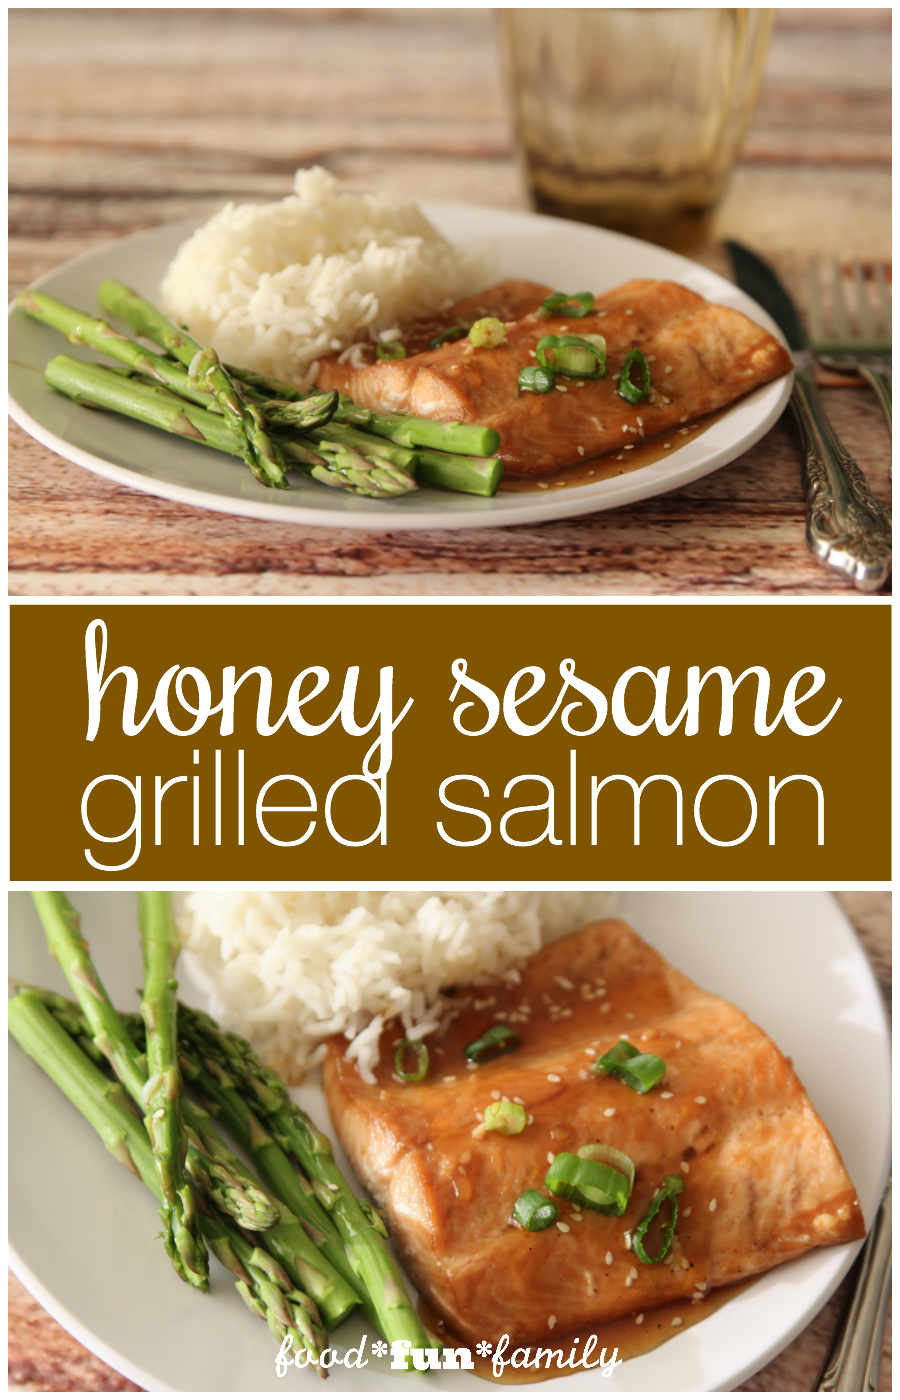 Grilled honey sesame salmon - a quick, delicious dinner recipe that the whole family will love!